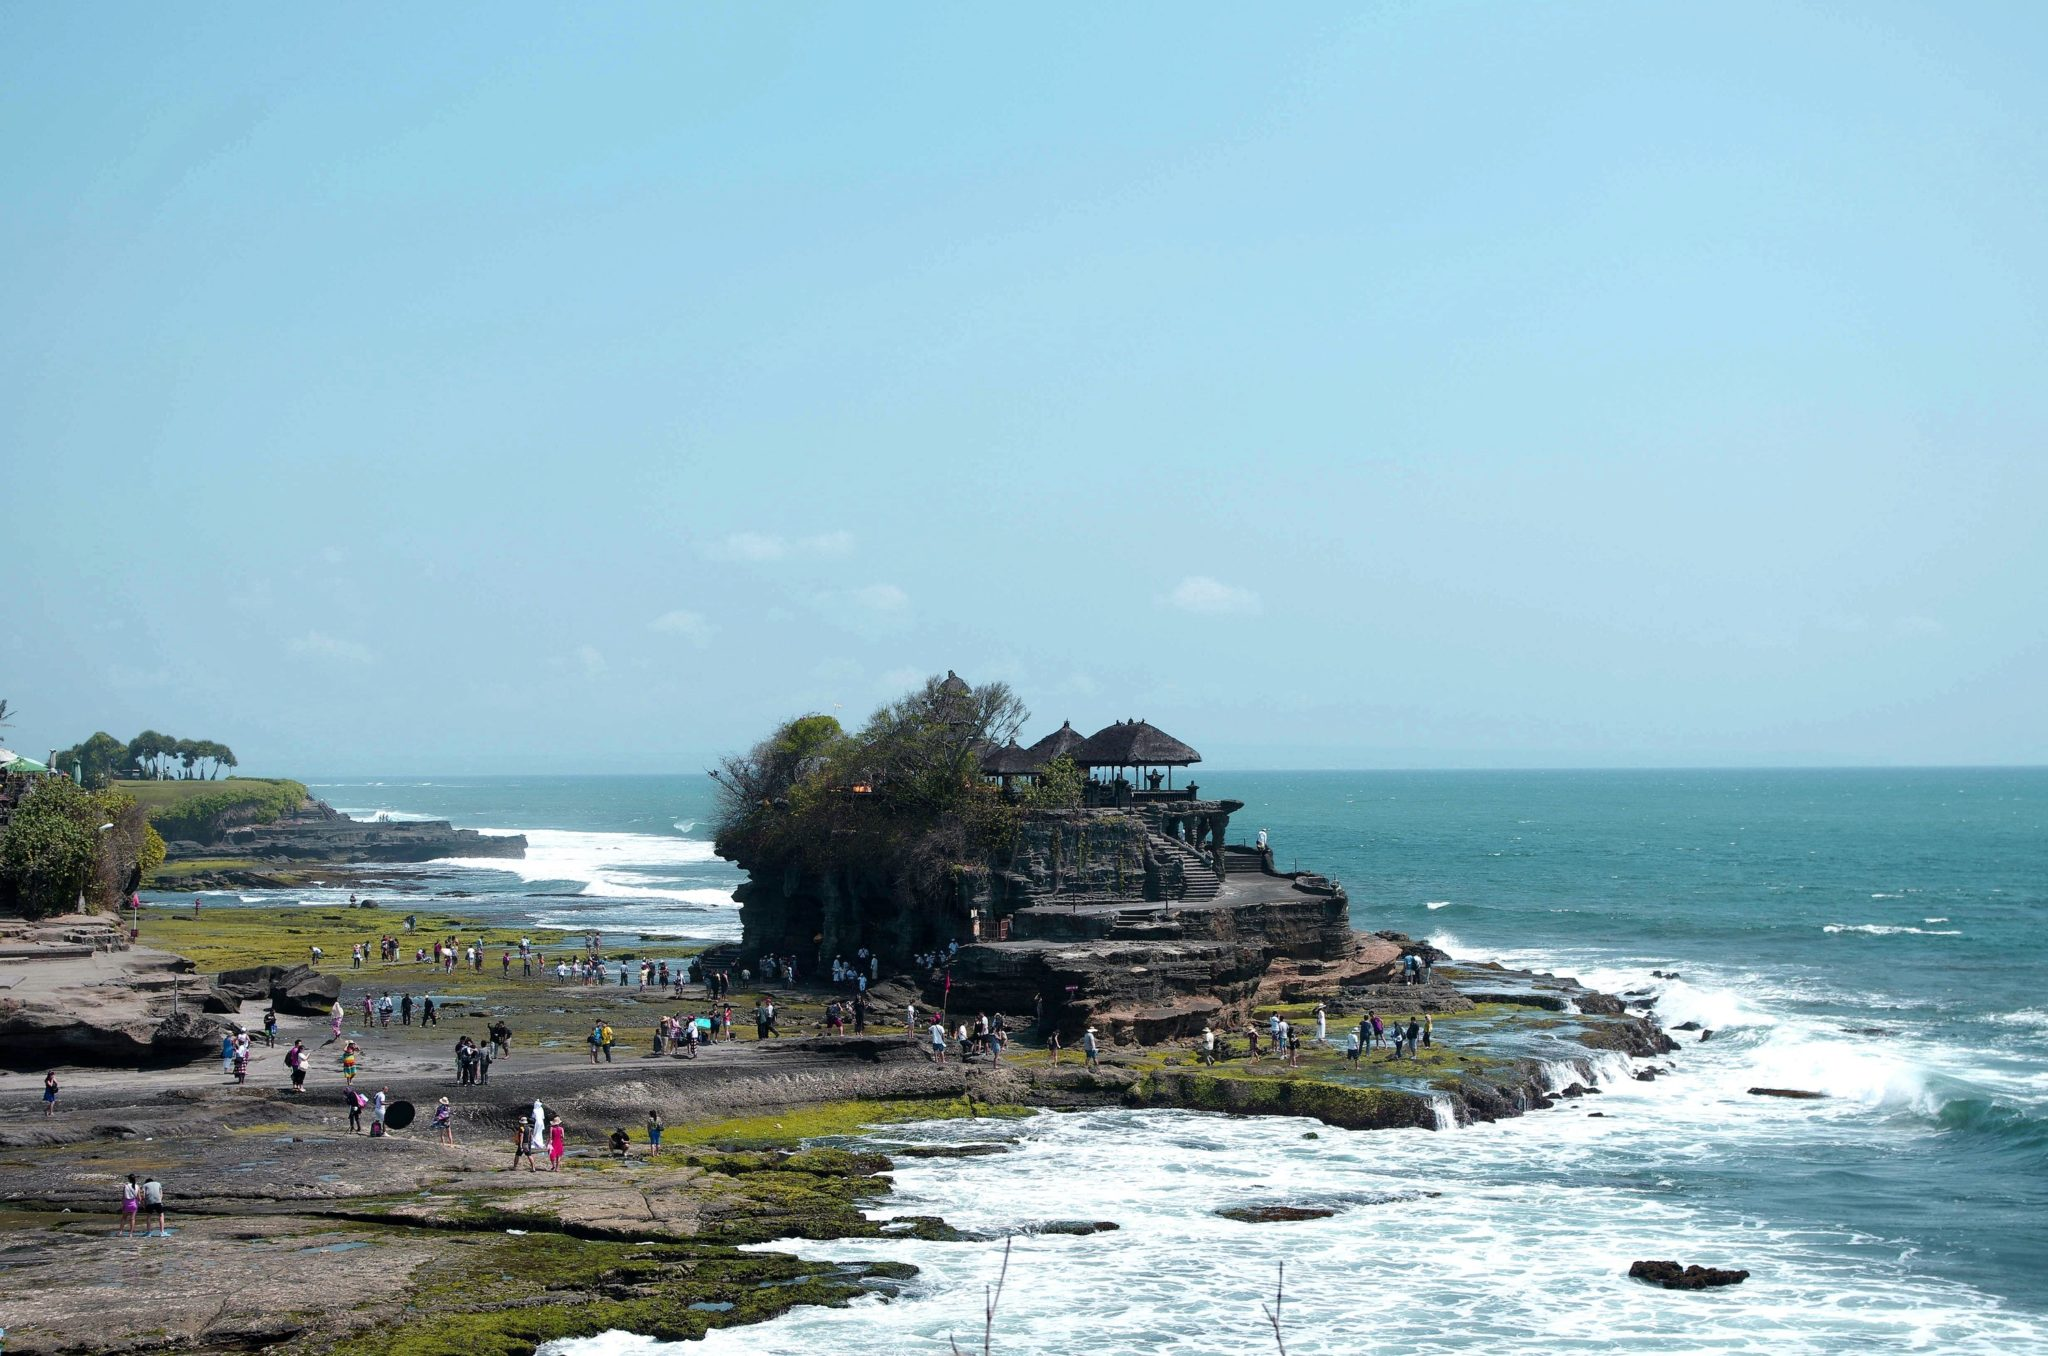 When is the best time to go to Bali?